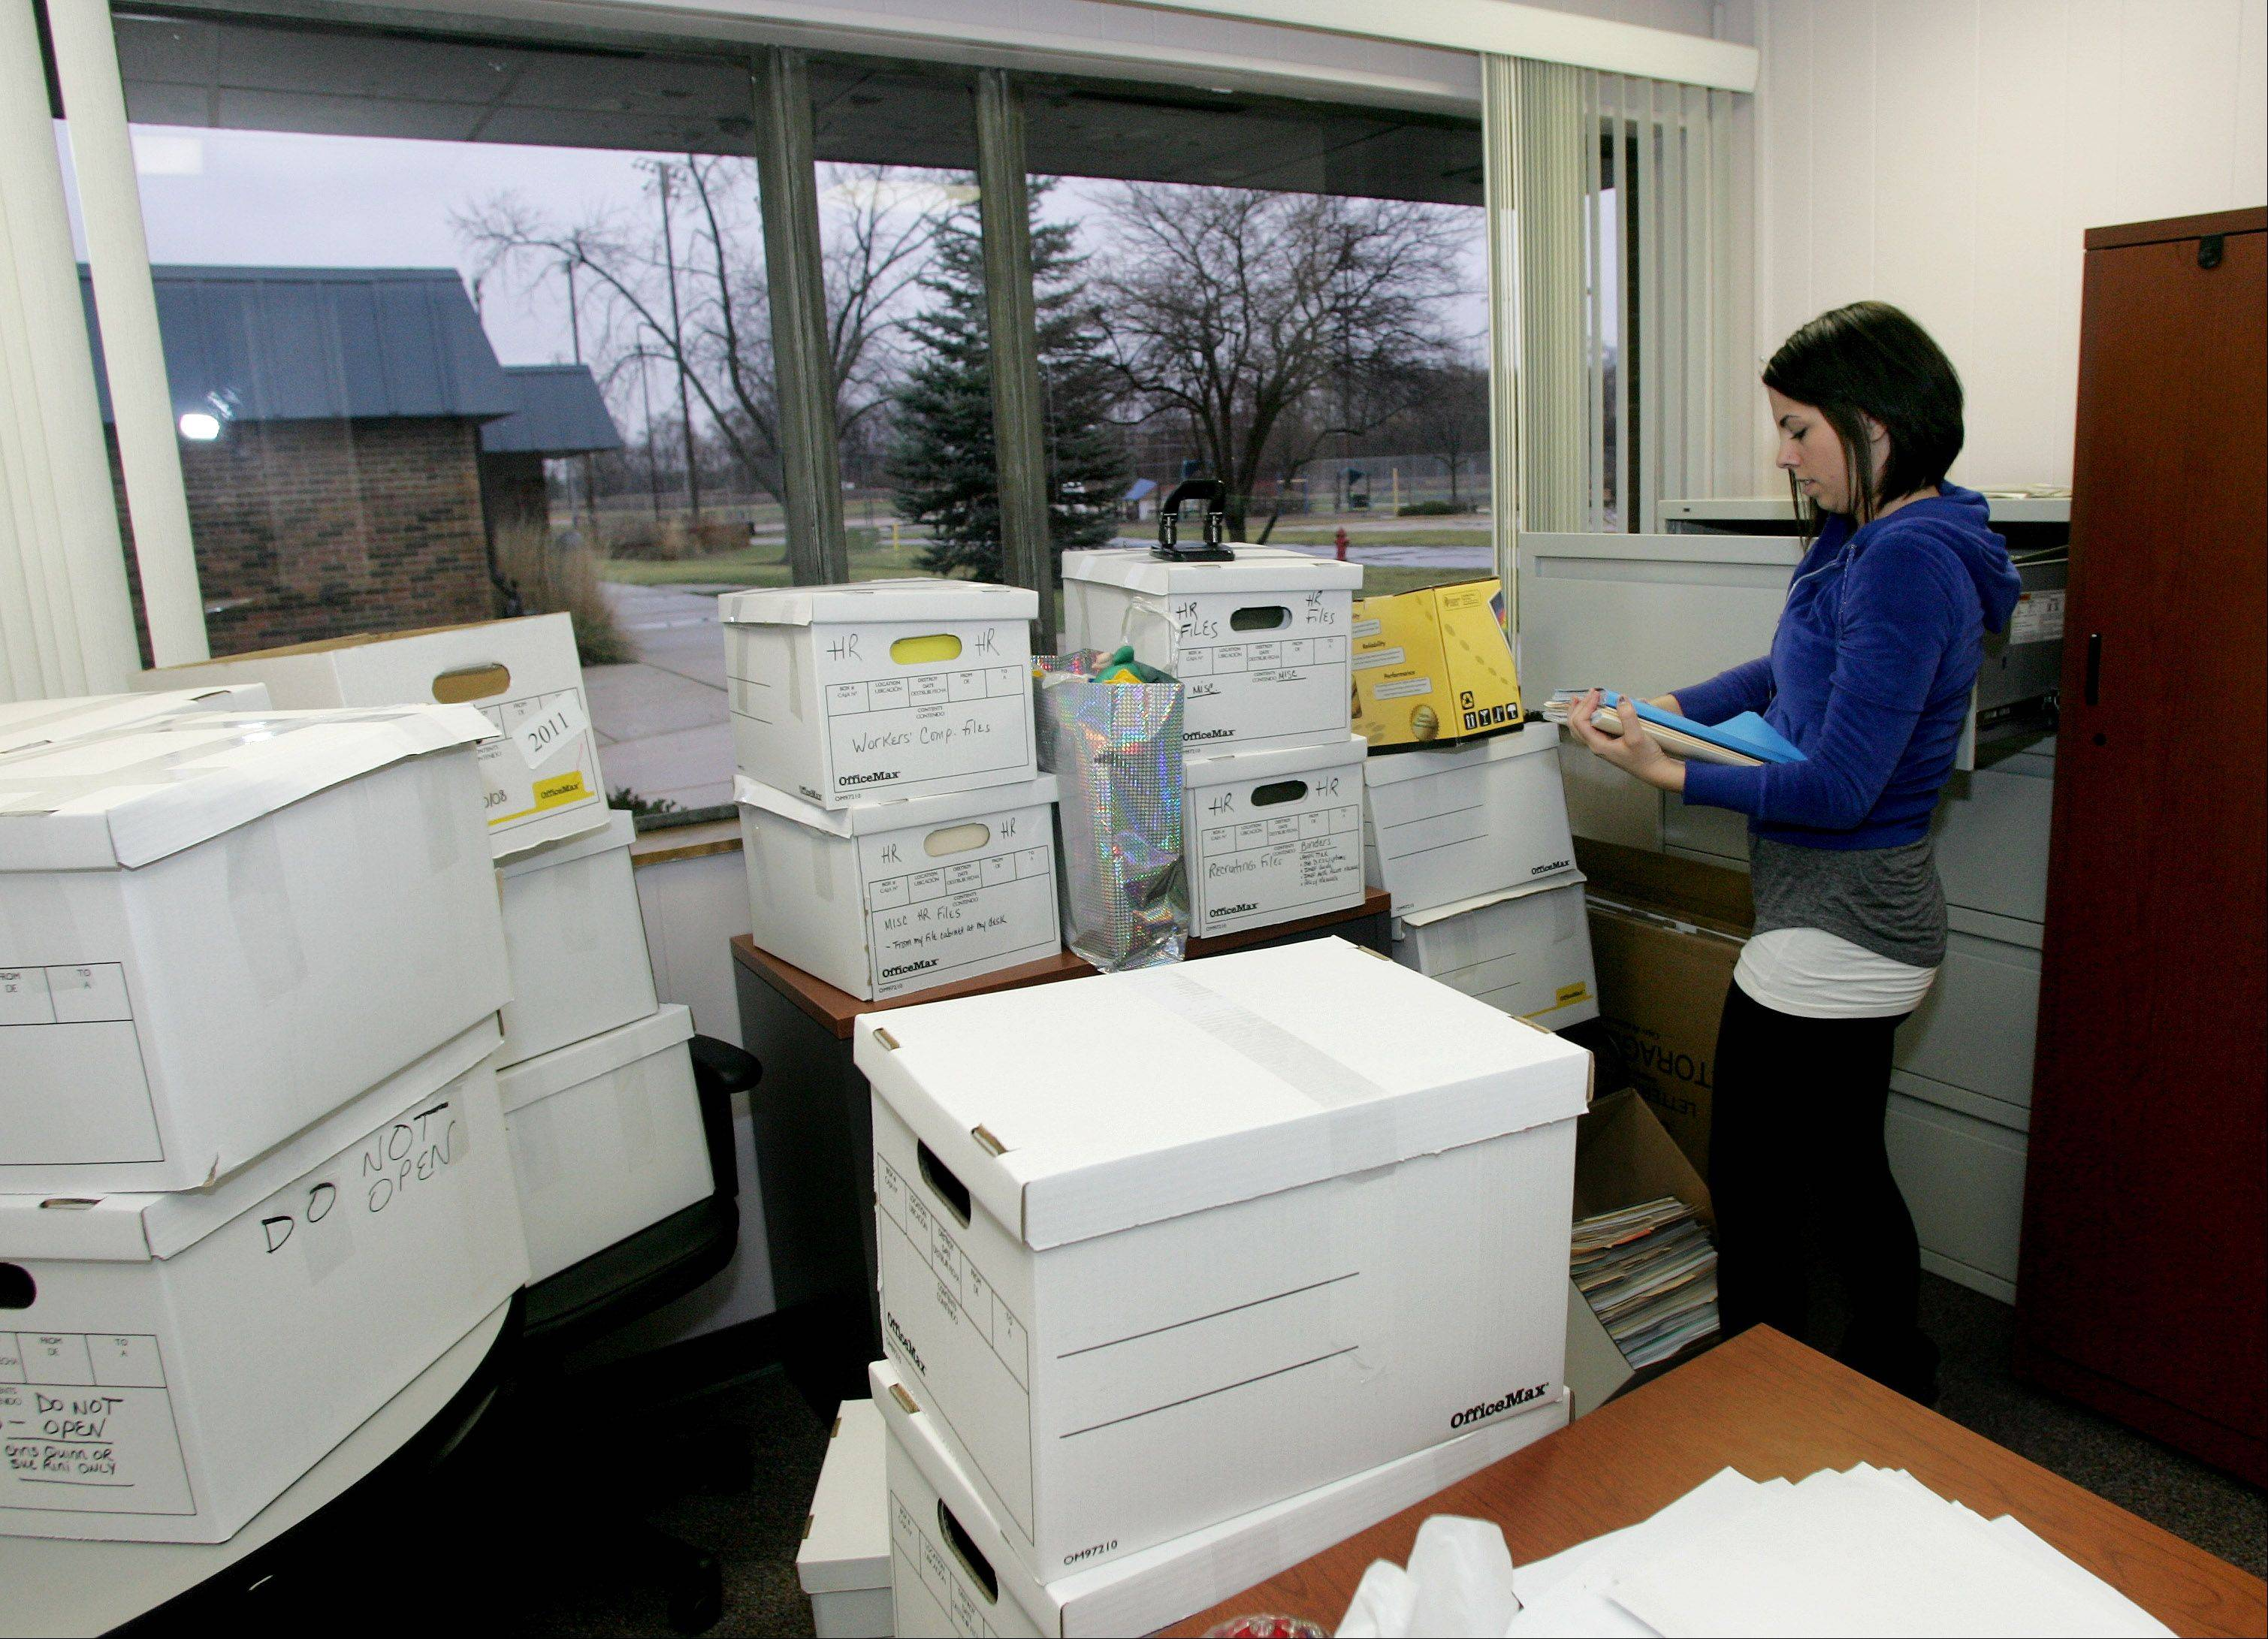 Nicole Parisi of the Carol Stream Park District packs materials in the human resources department at the Aldrin Community Center, which is scheduled for demolition in the next few months.